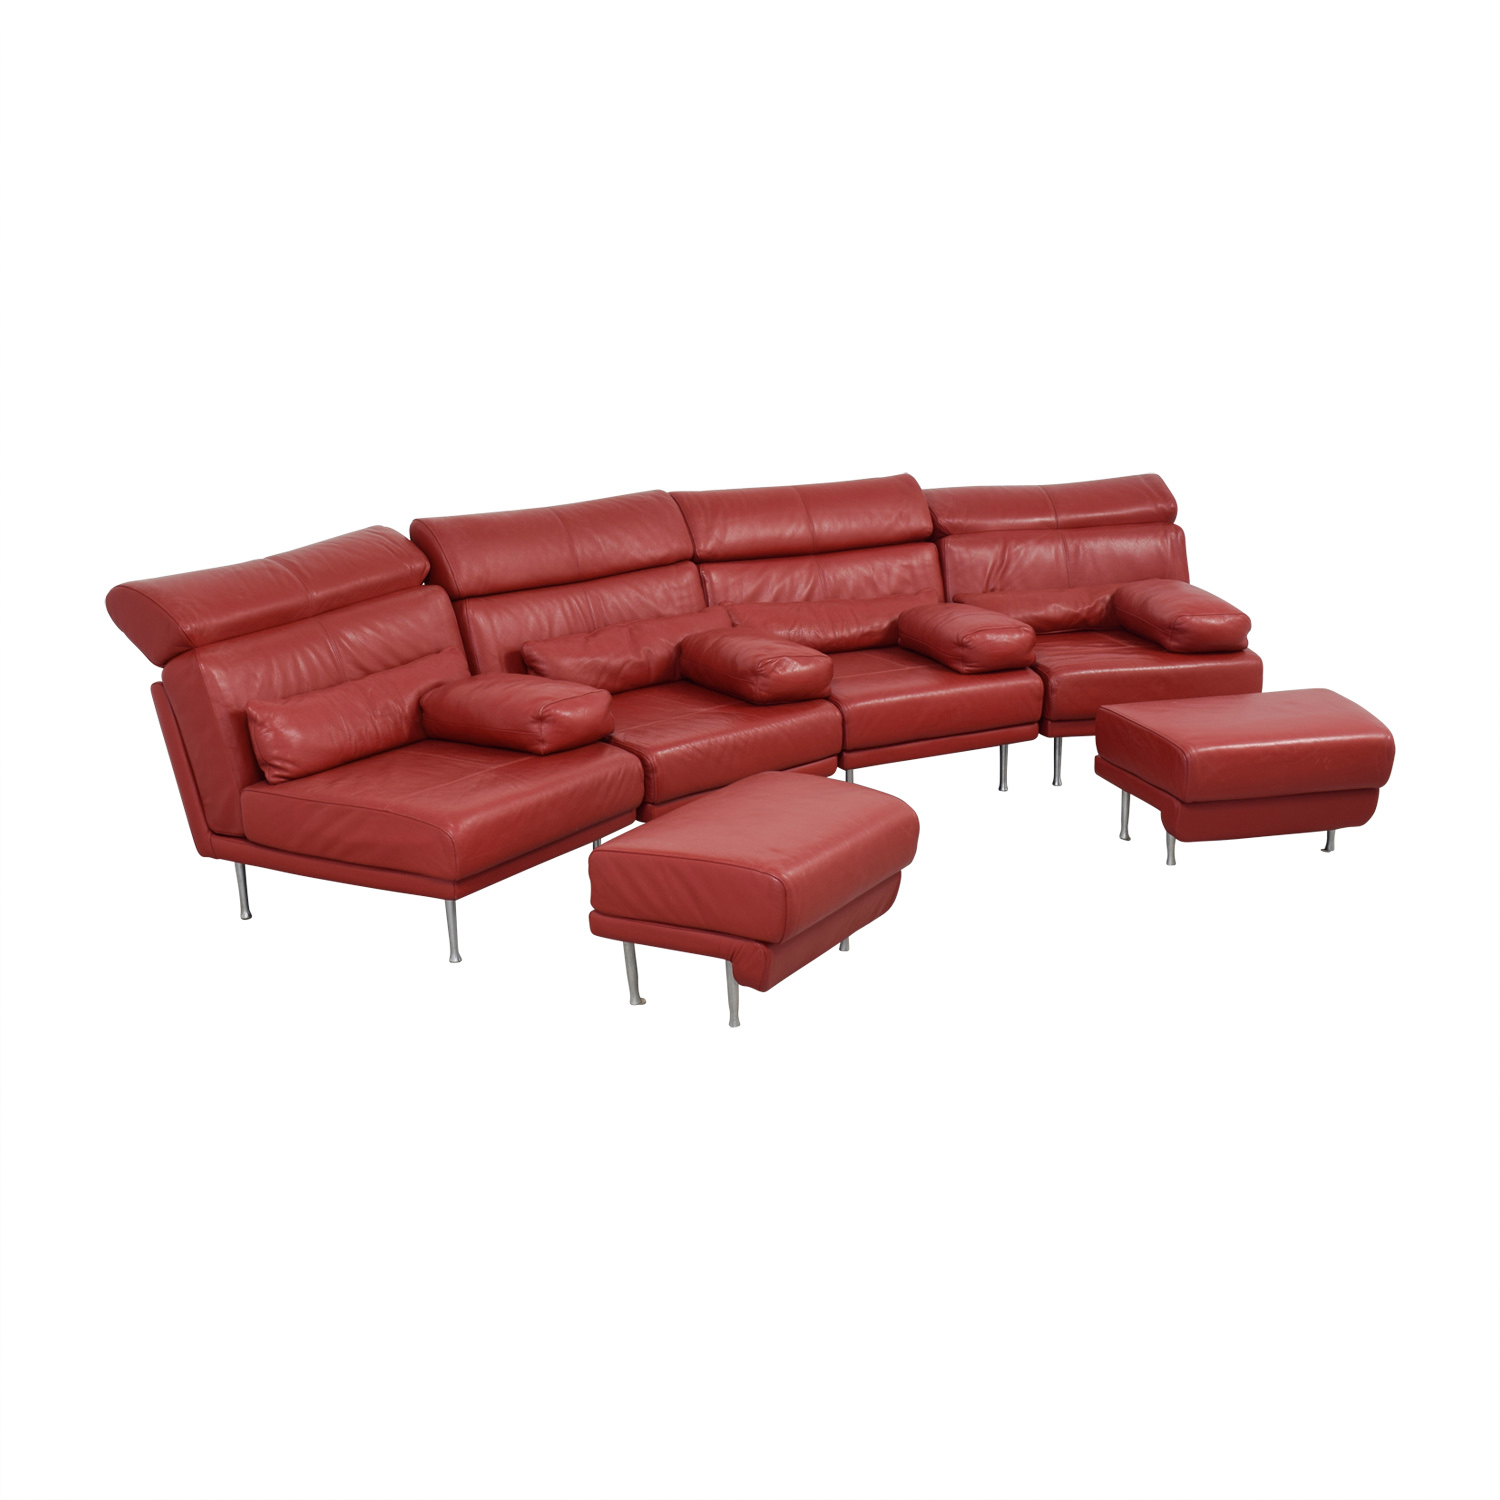 90 Off Natuzzi Natuzzi Red Leather Sectional With Two